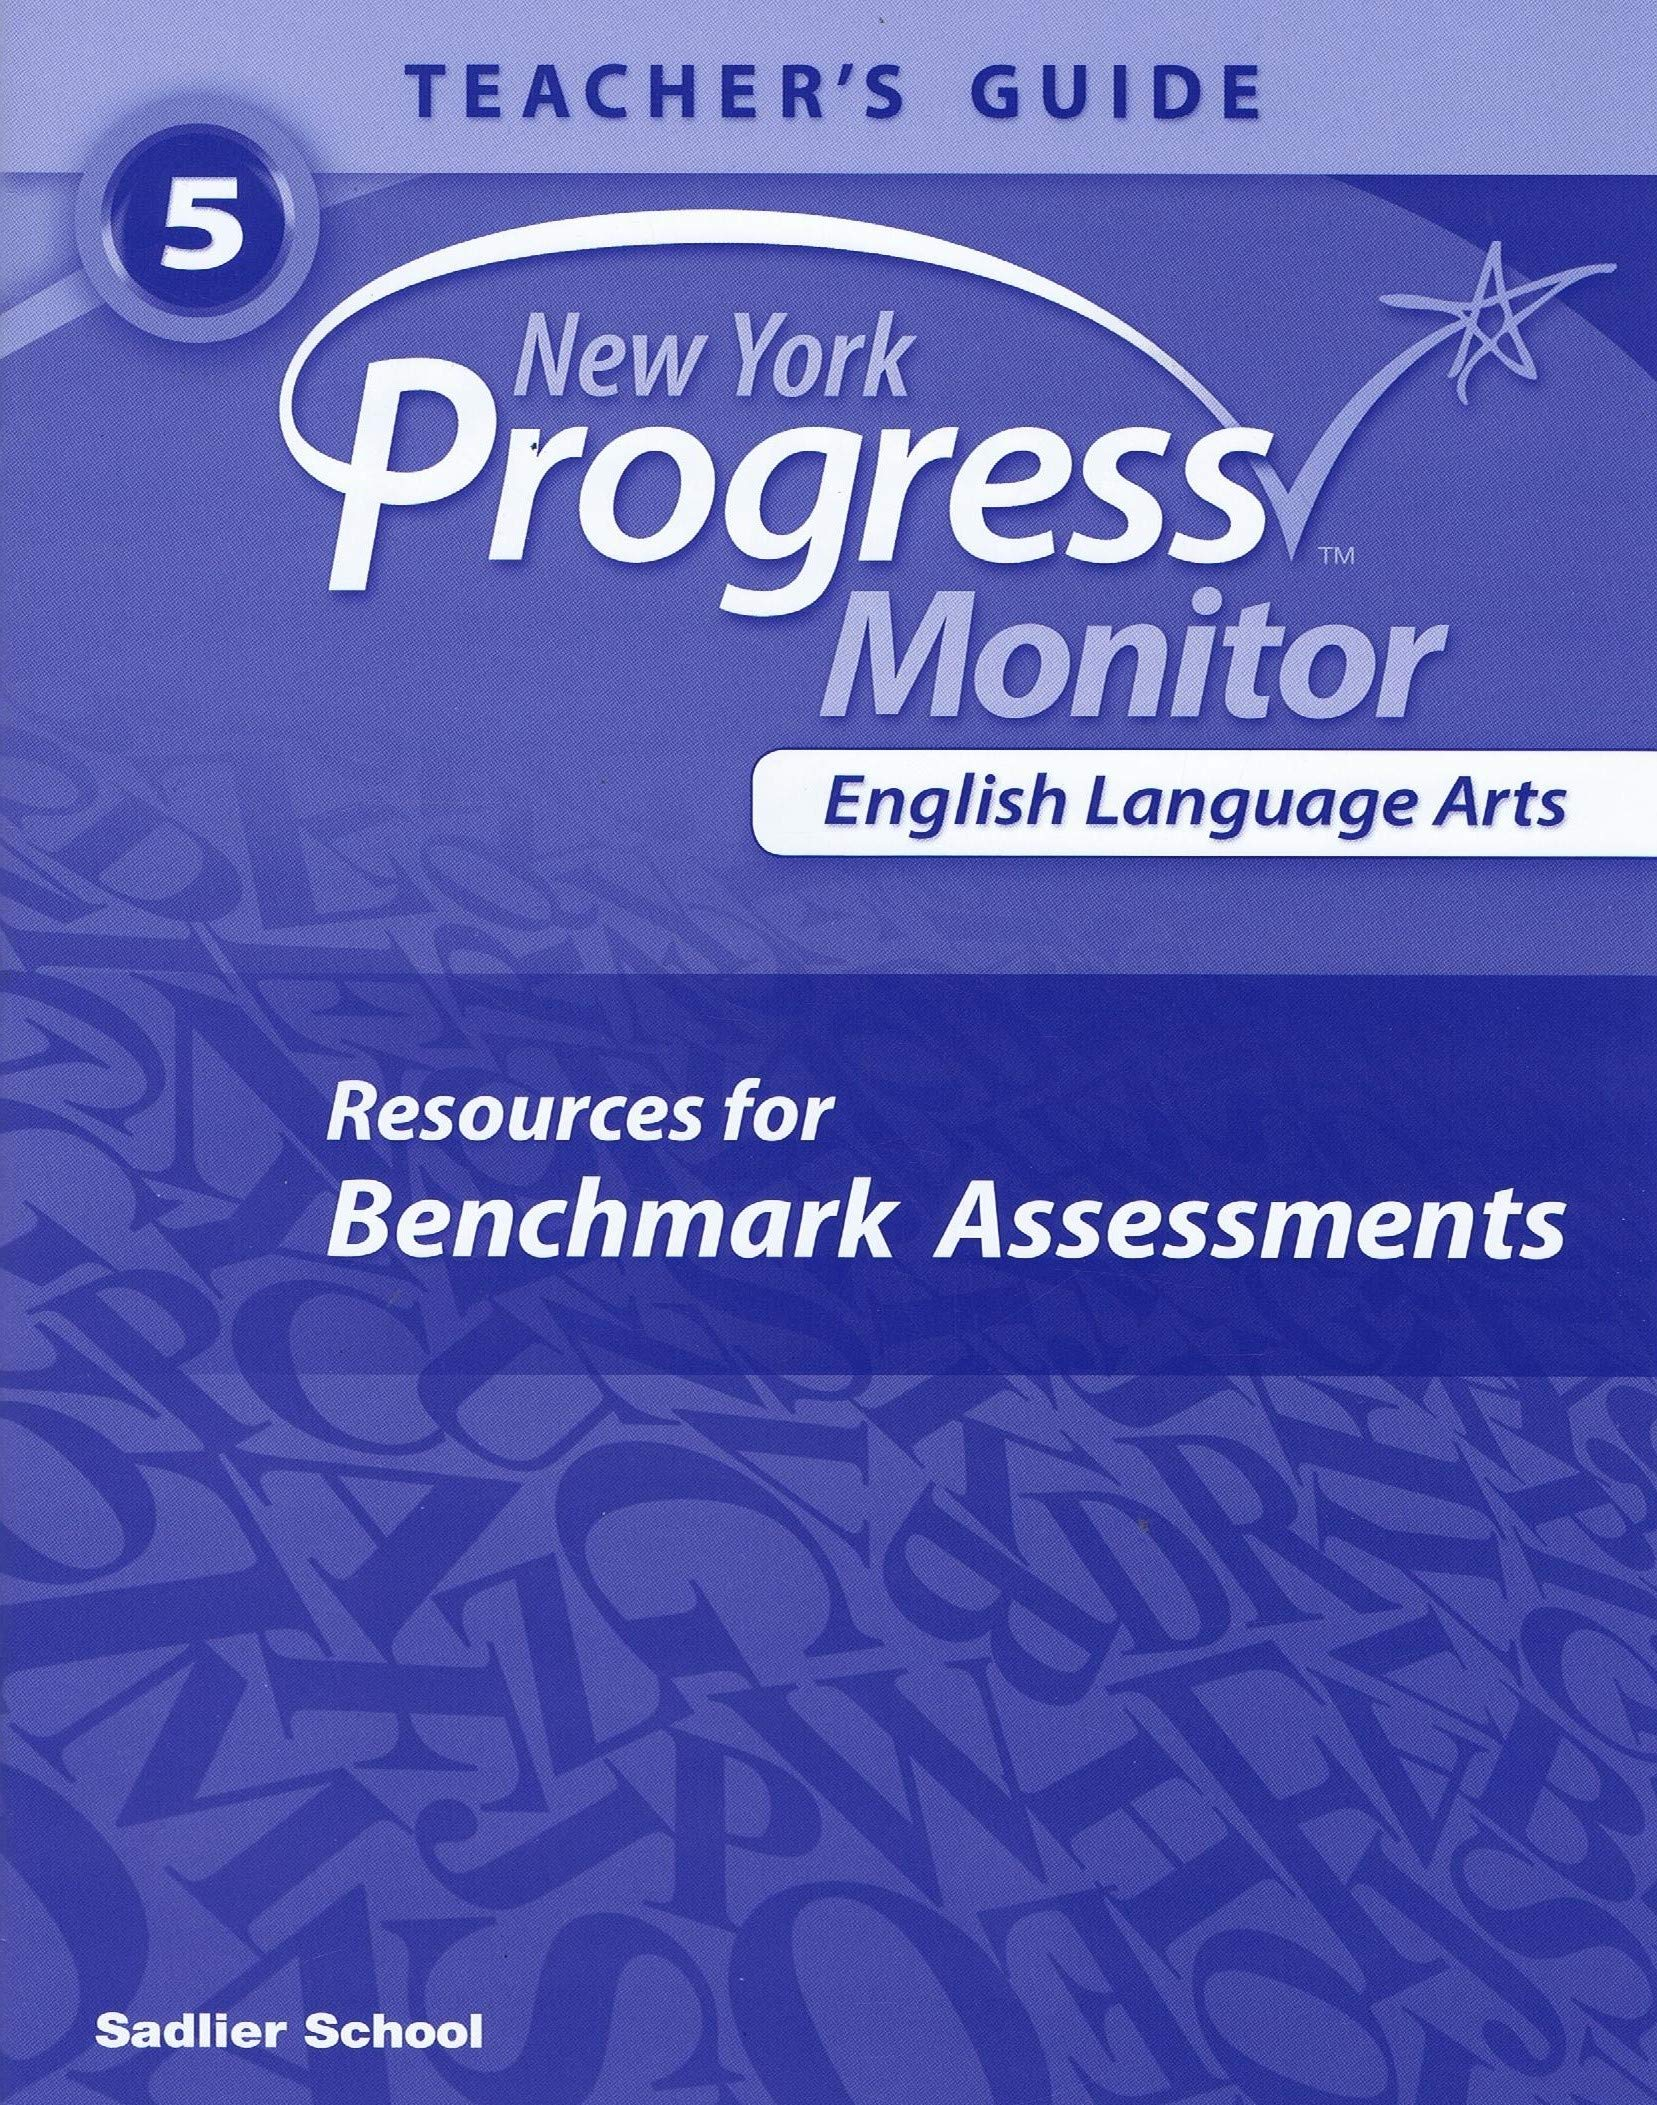 New York Progress Monitor English Language Arts resources for Benchmark Assessments Teacher's Guide 5 pdf